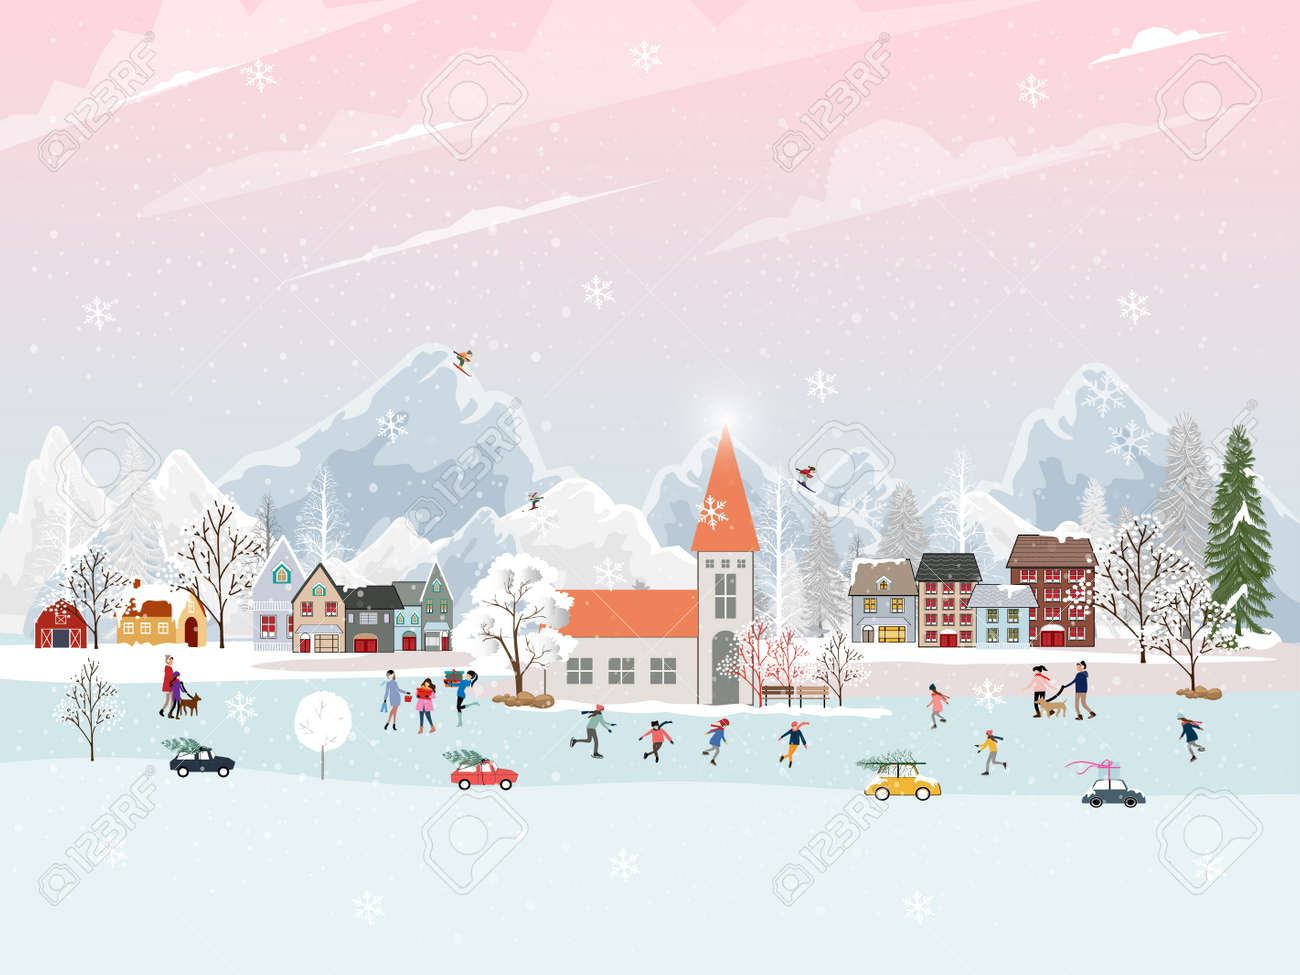 Winter landscape at night with people having fun doing outdoor activities on new year,Christmas day in village with people celebration, kid playing ice skates, teenagers skiing with snow falling - 159733935